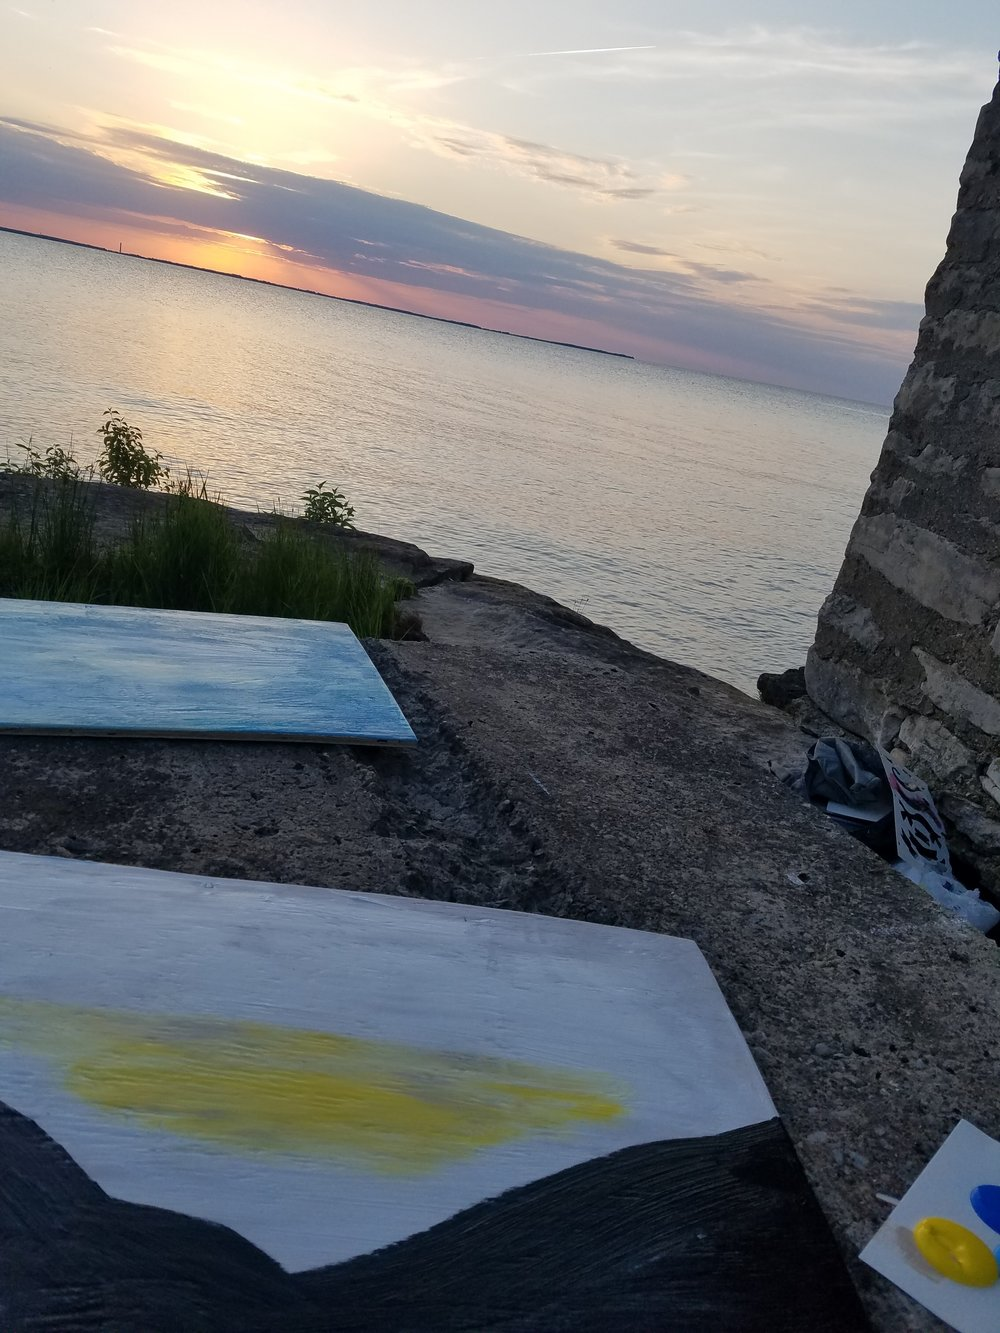 working on the two window paintings as the sun set over the lake. seriously.